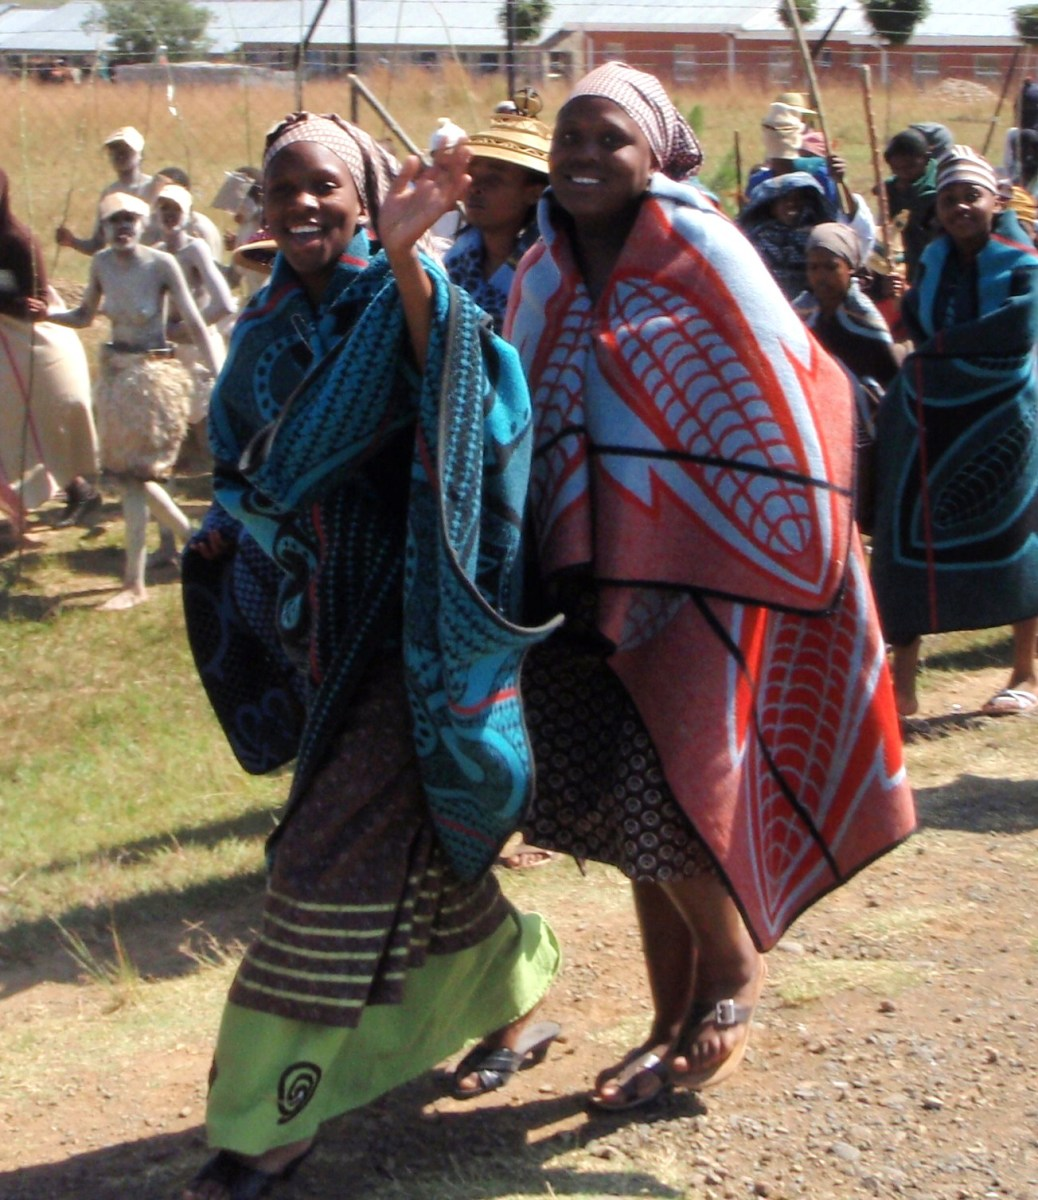 Basotho Women at their parade